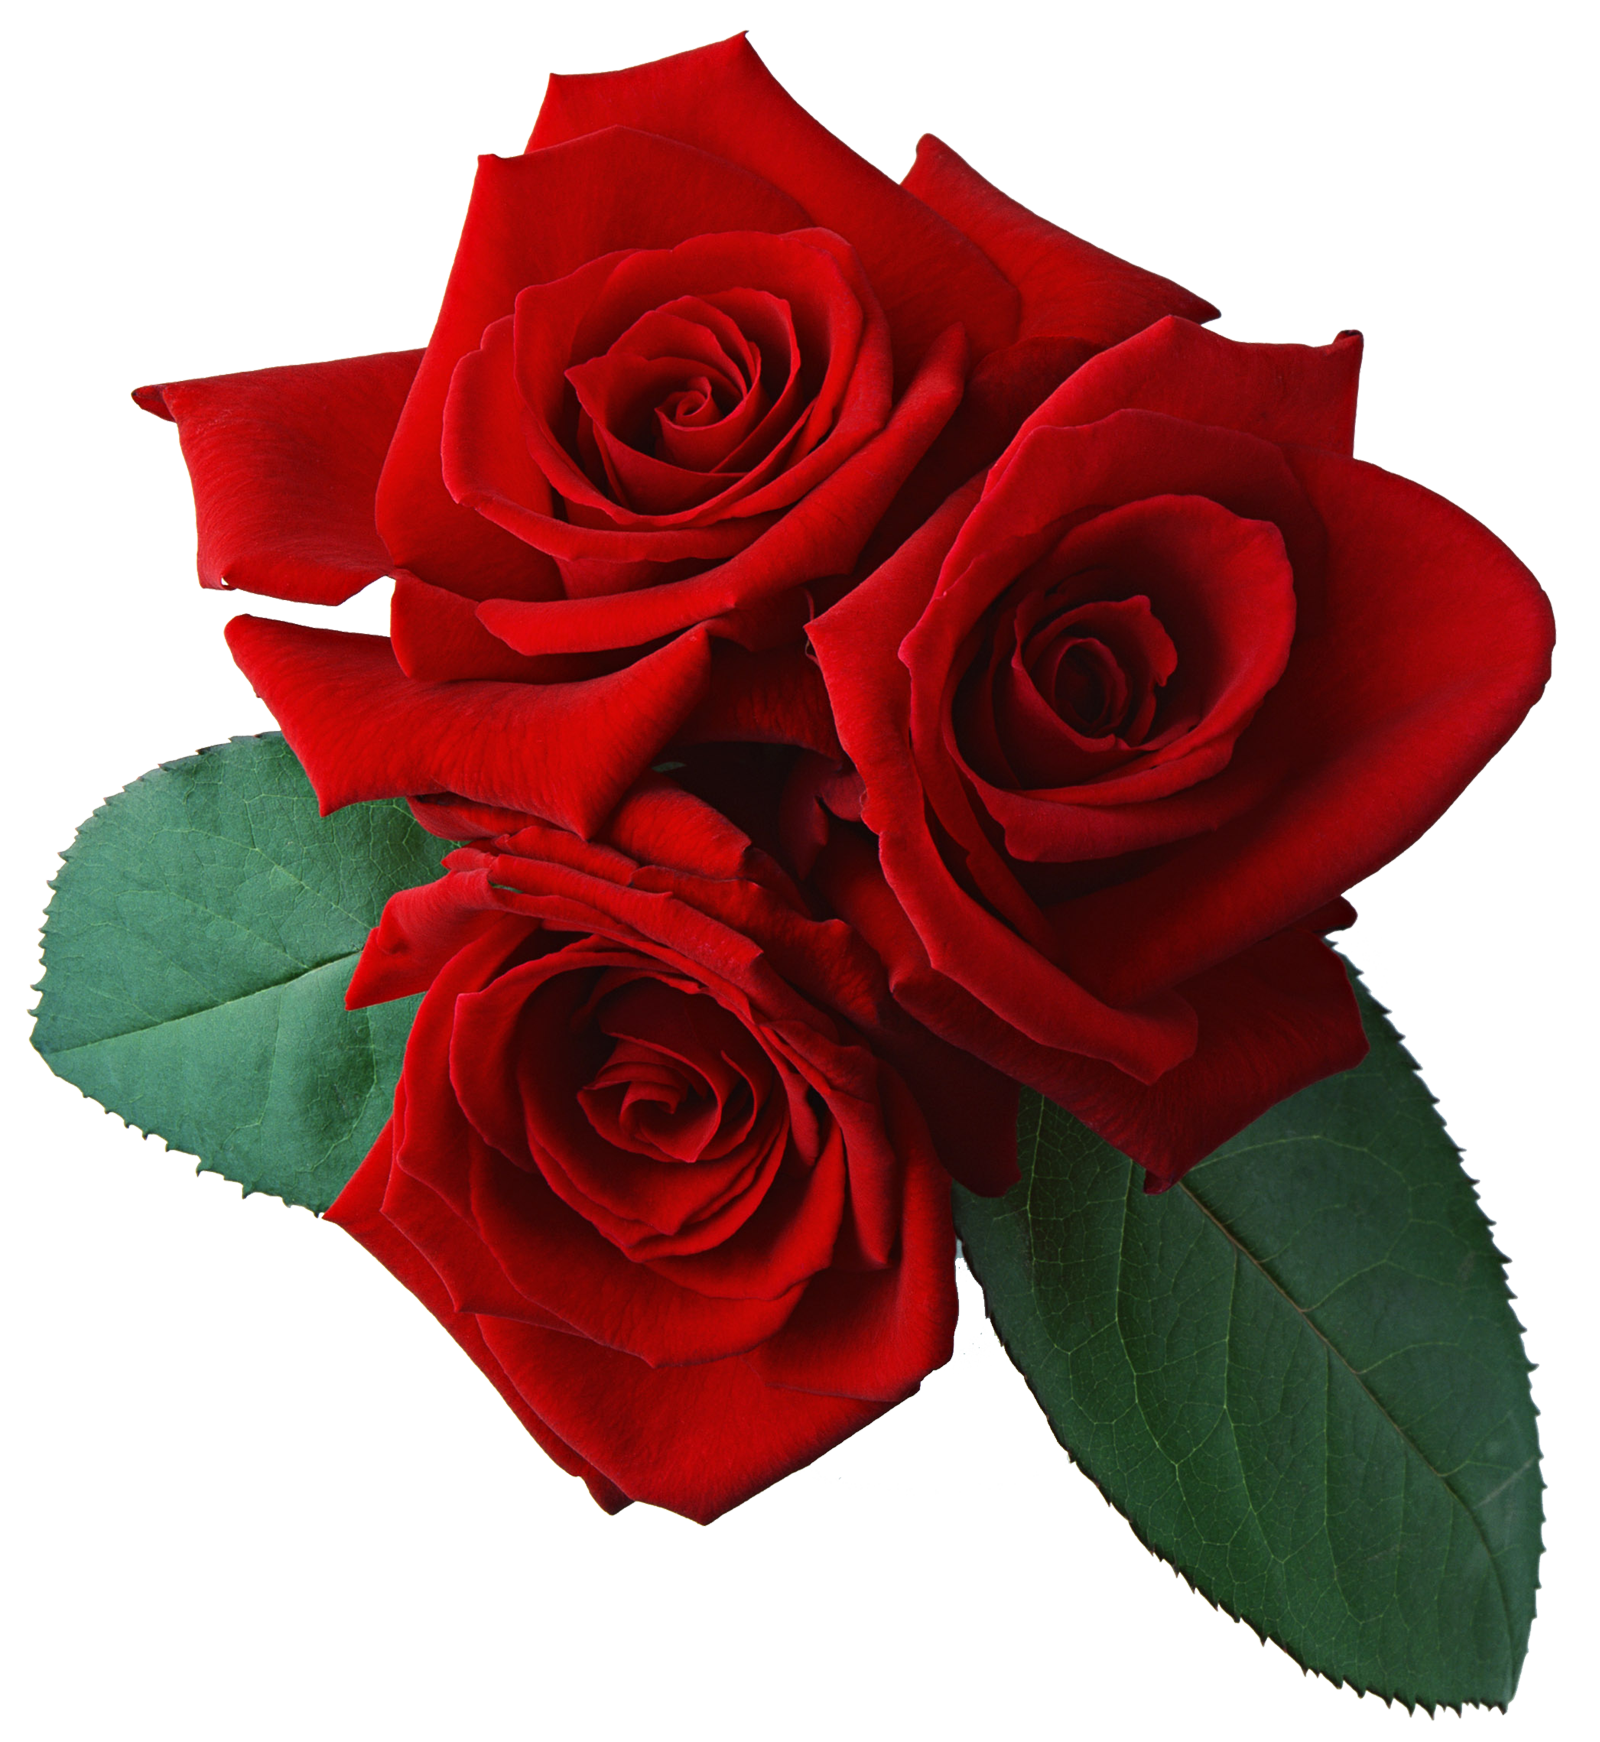 Clipart rose giving. Png transparent images all